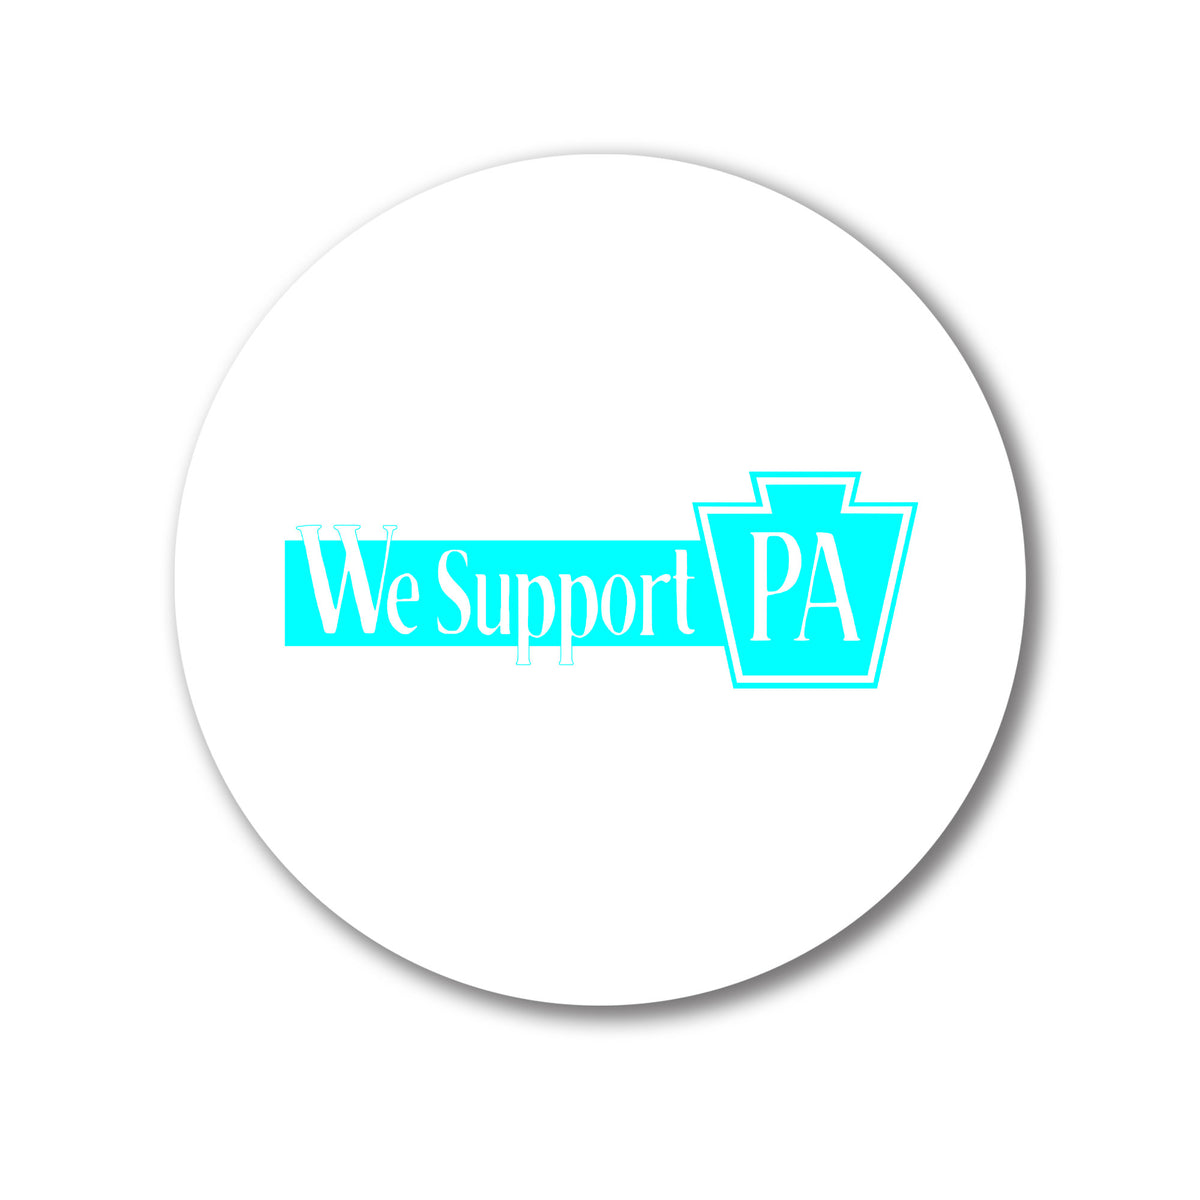 Strange and Unusual T-Shirts We Support PA Coasters